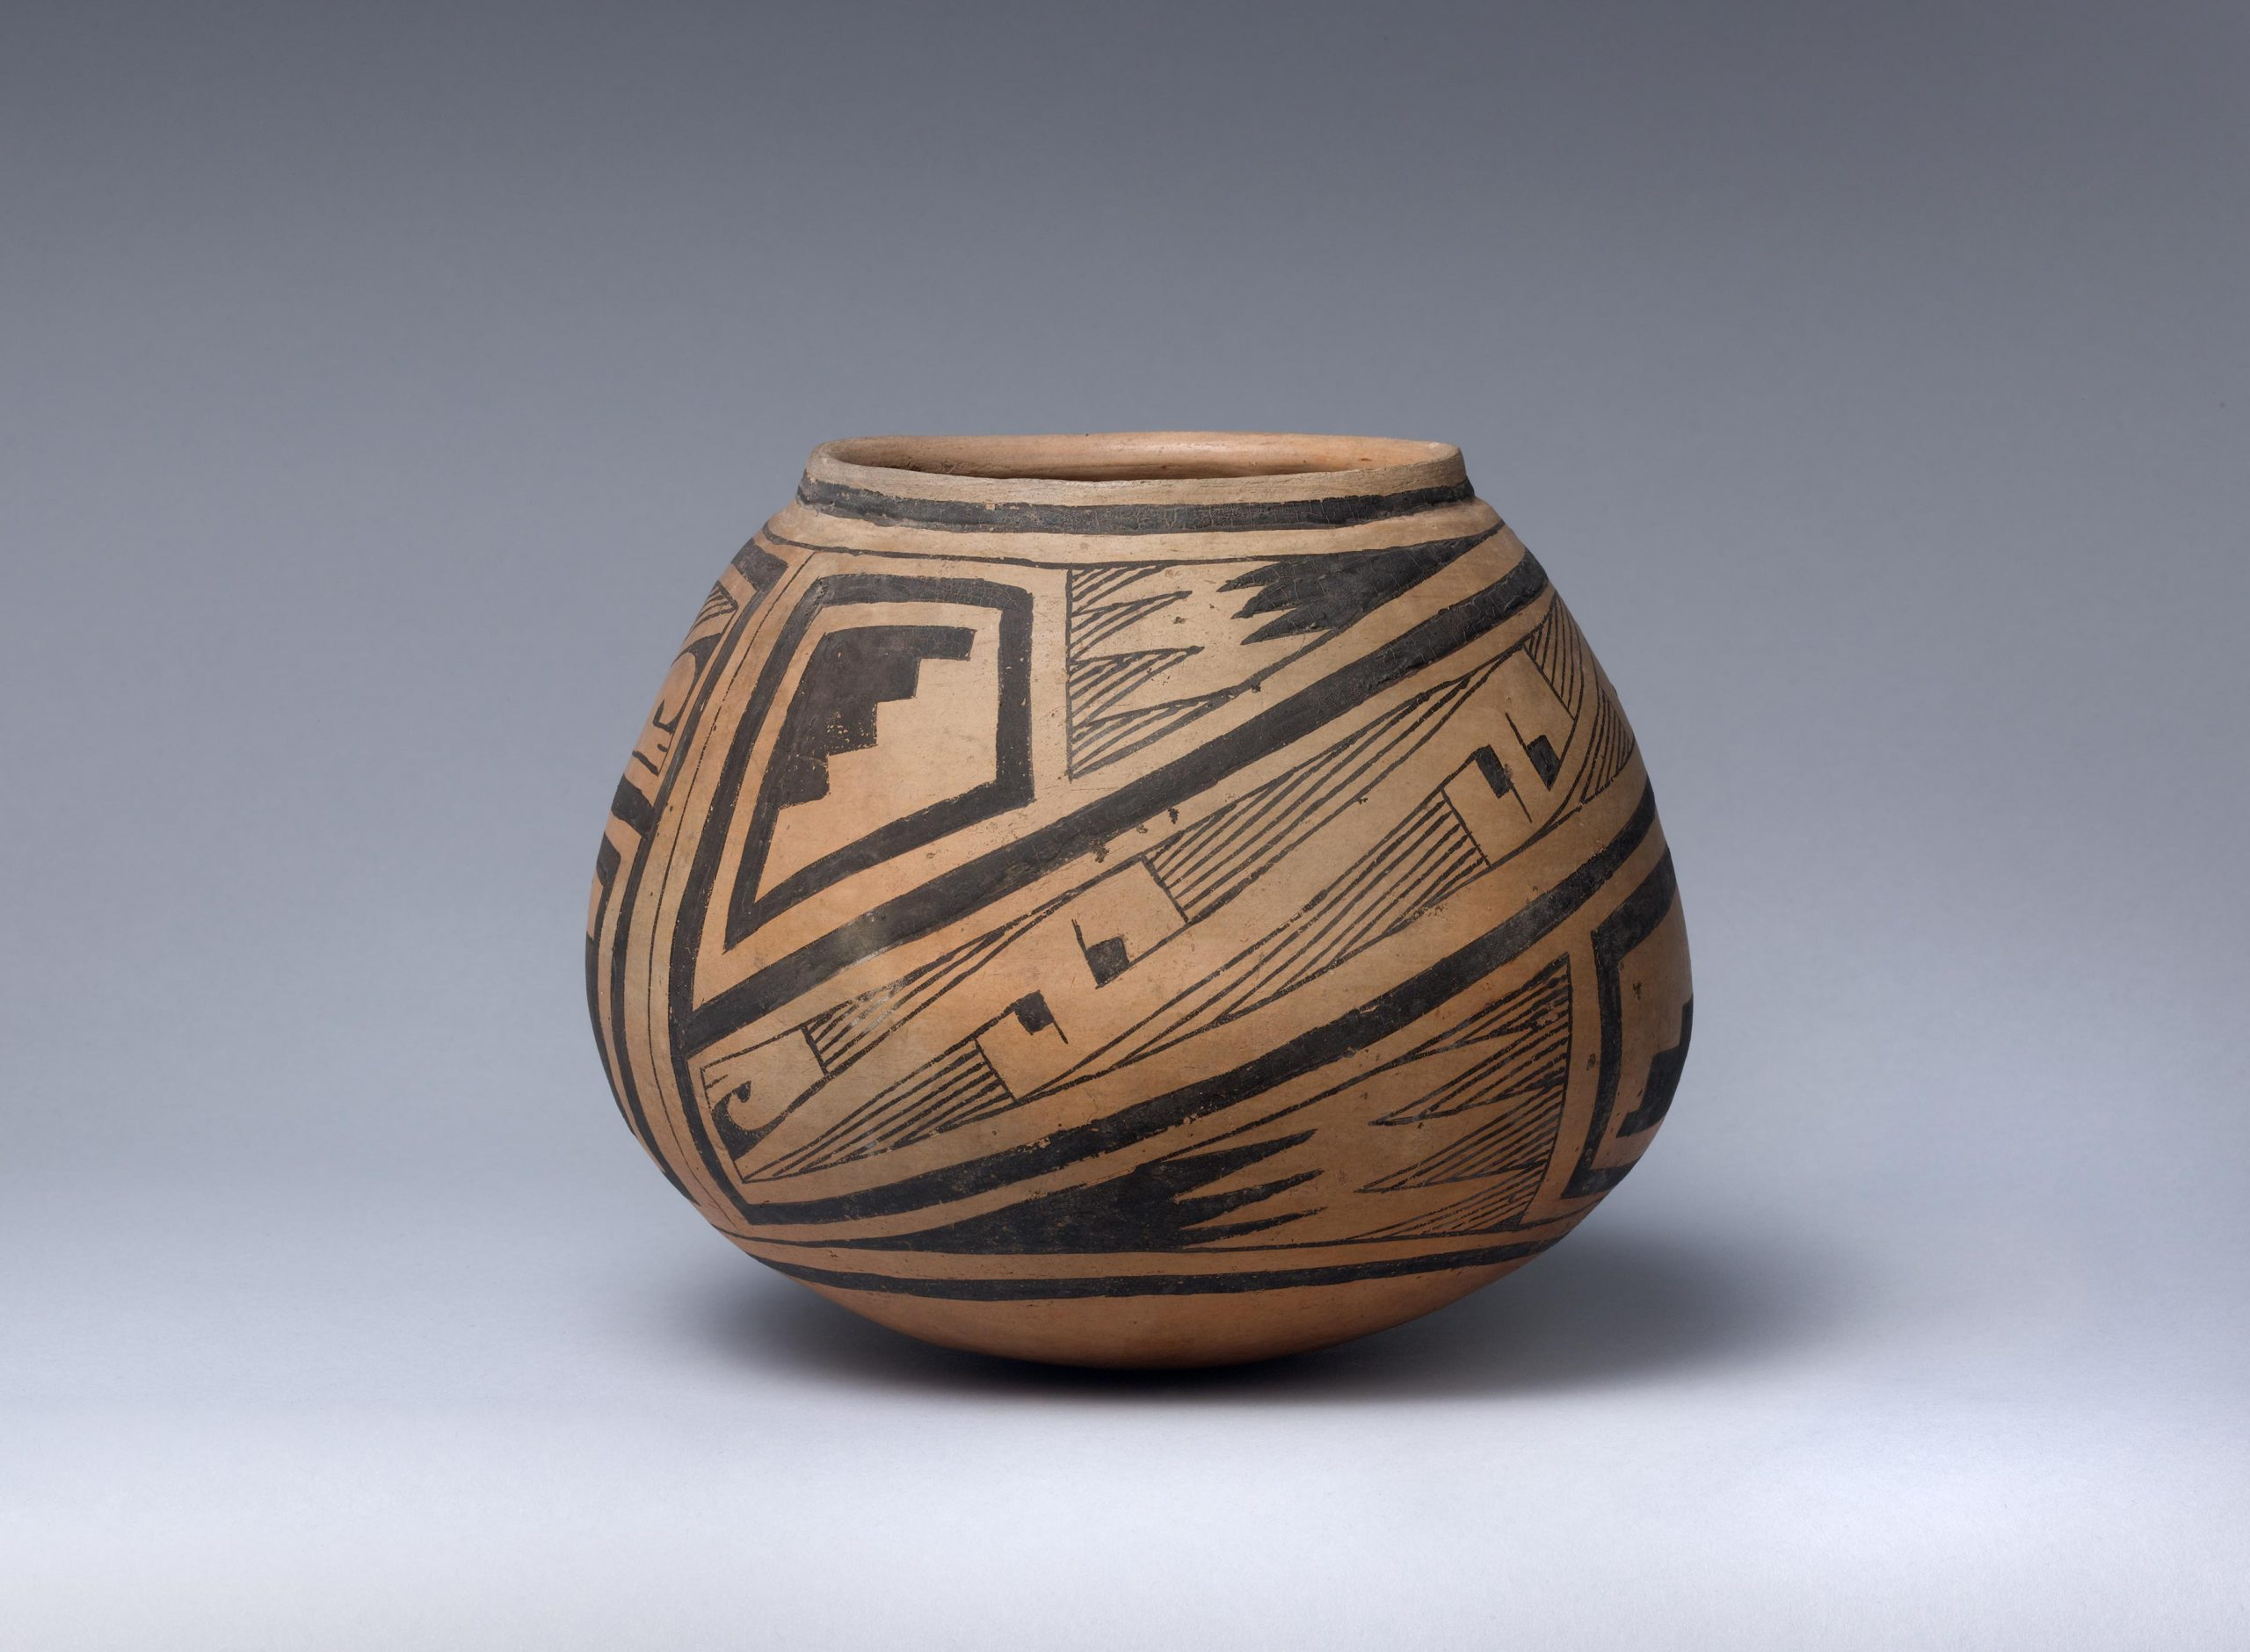 Clay bowl with black geometric design on exterior.